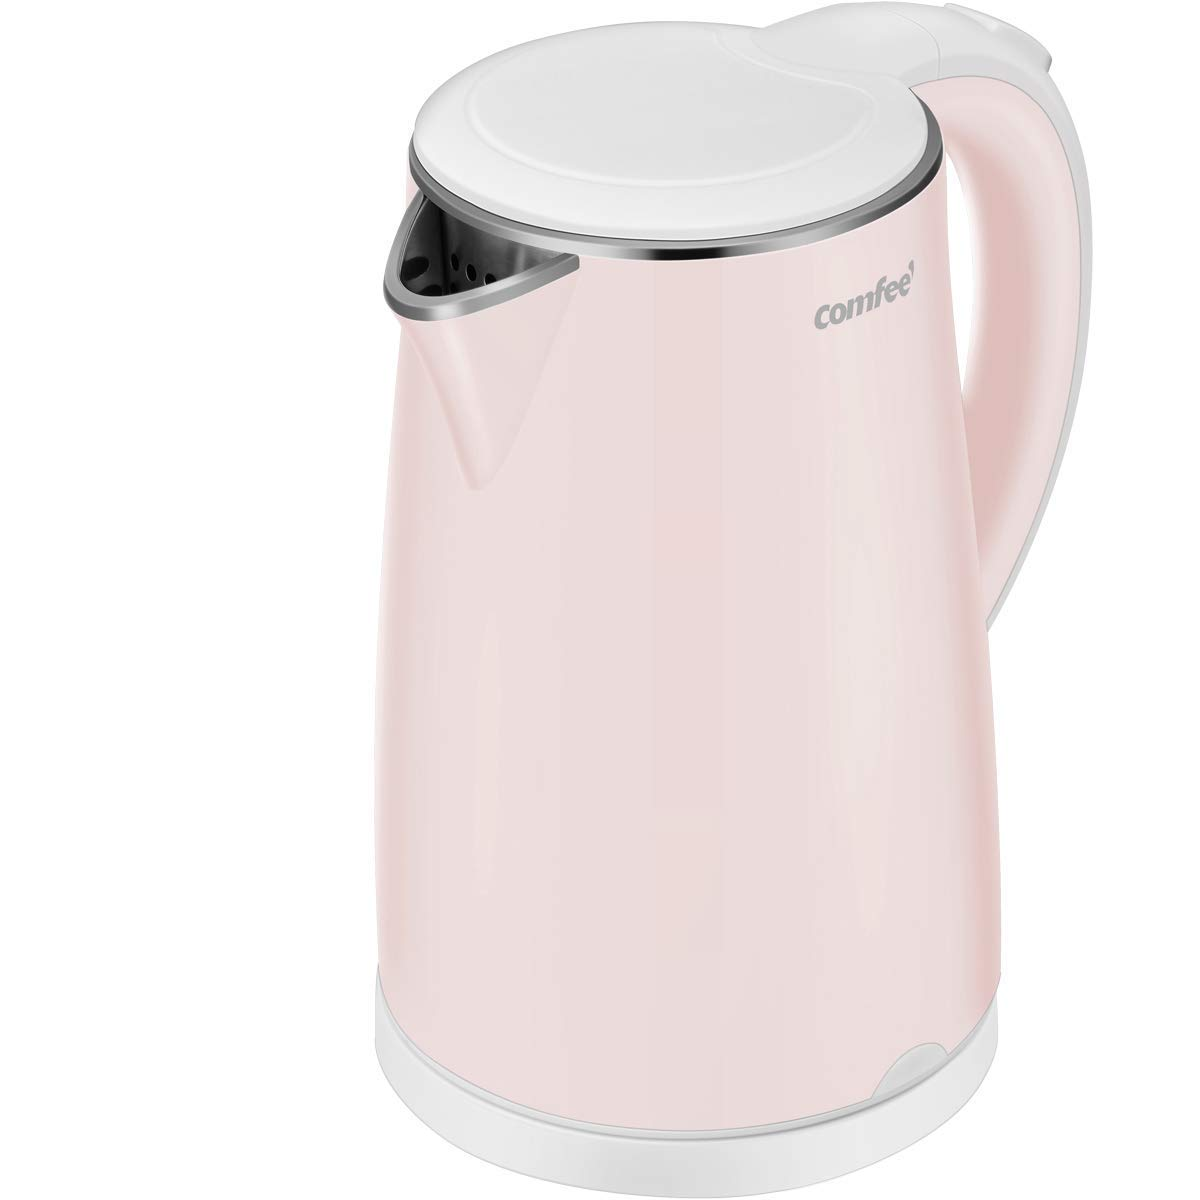 Electric Kettle Teapot, Fast Water Heater Boiler, 1.7 Liter, 1500W BPA-Free, Quiet Boil & Cool Touch Series, Auto Shut-Off and Boil Dry Protection by Comfee (Pink)